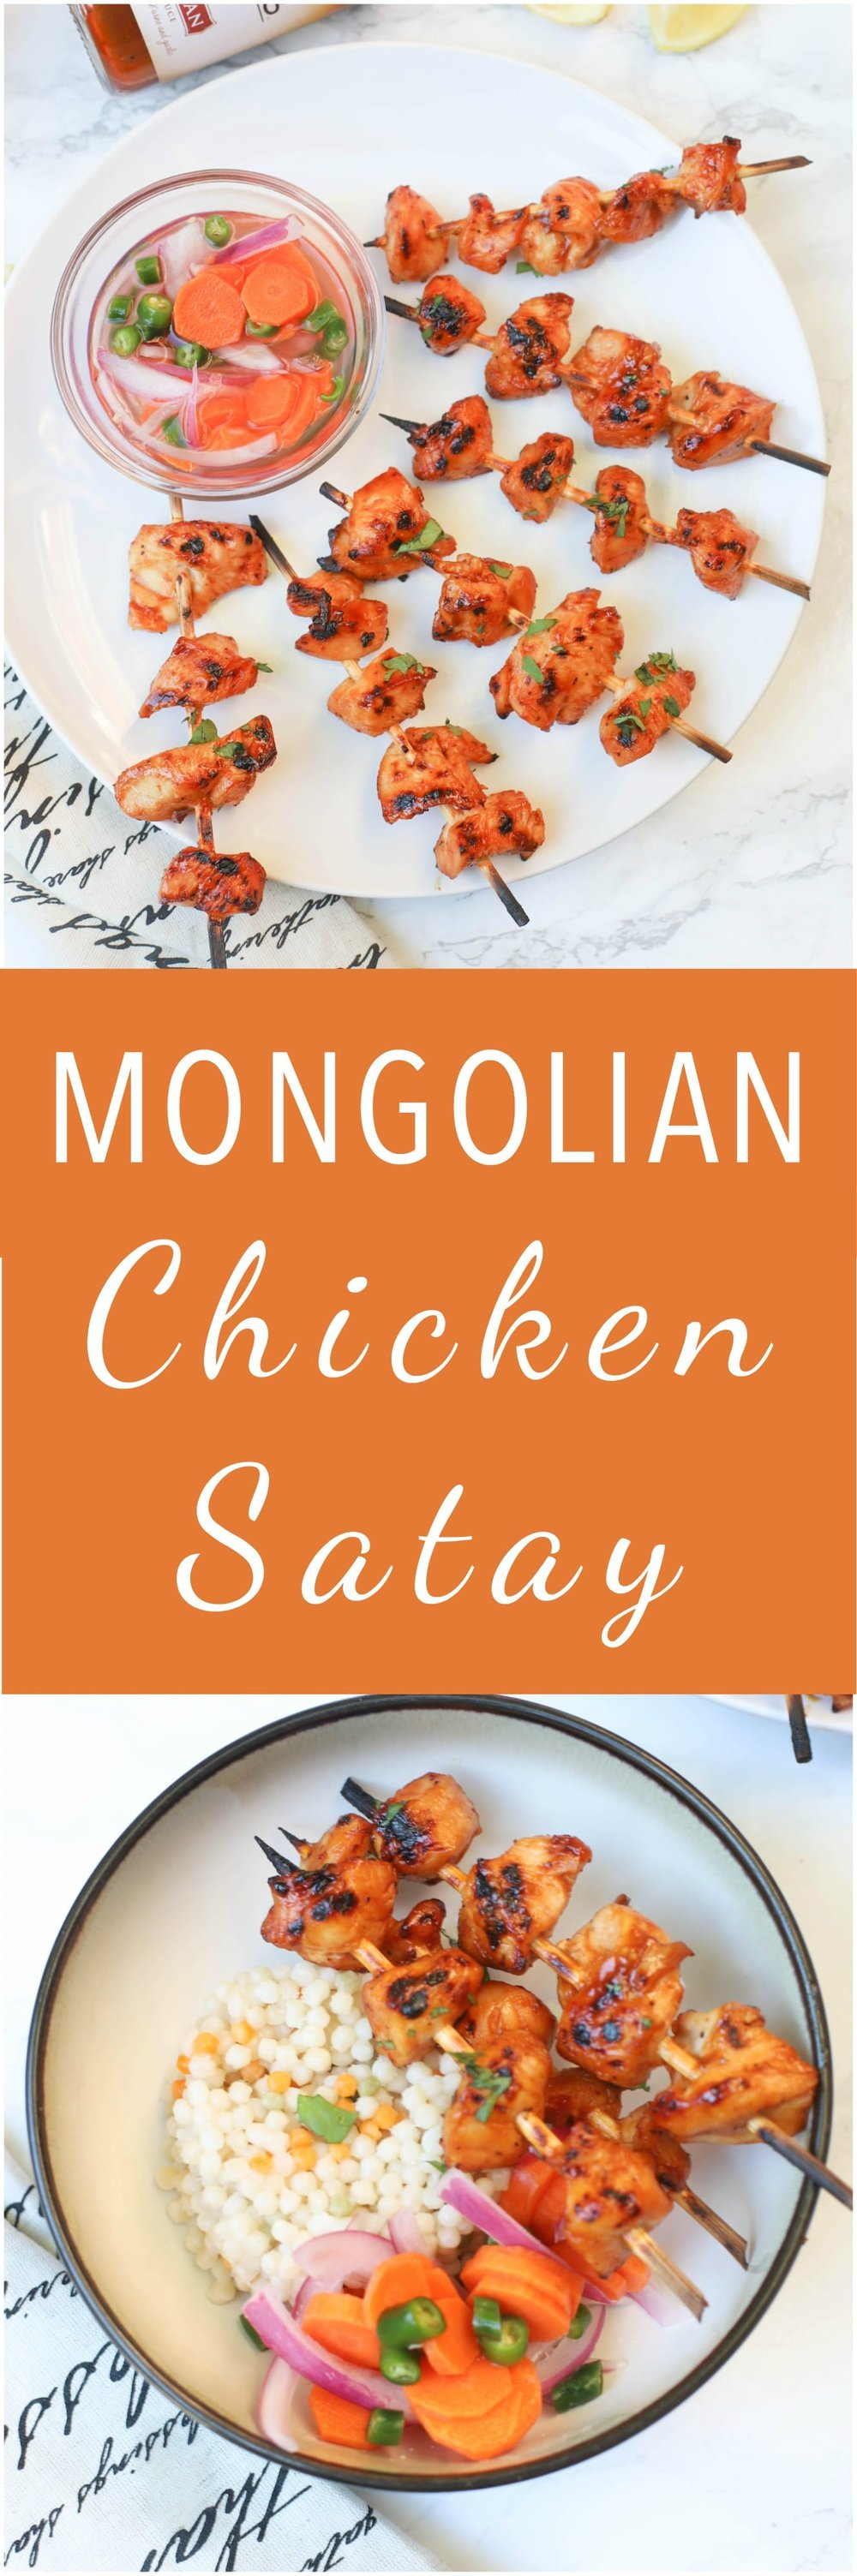 Mongolian Chicken Satay is a 2 ingredient easy, delicious appetizer or dinner that comes together in less than hour.